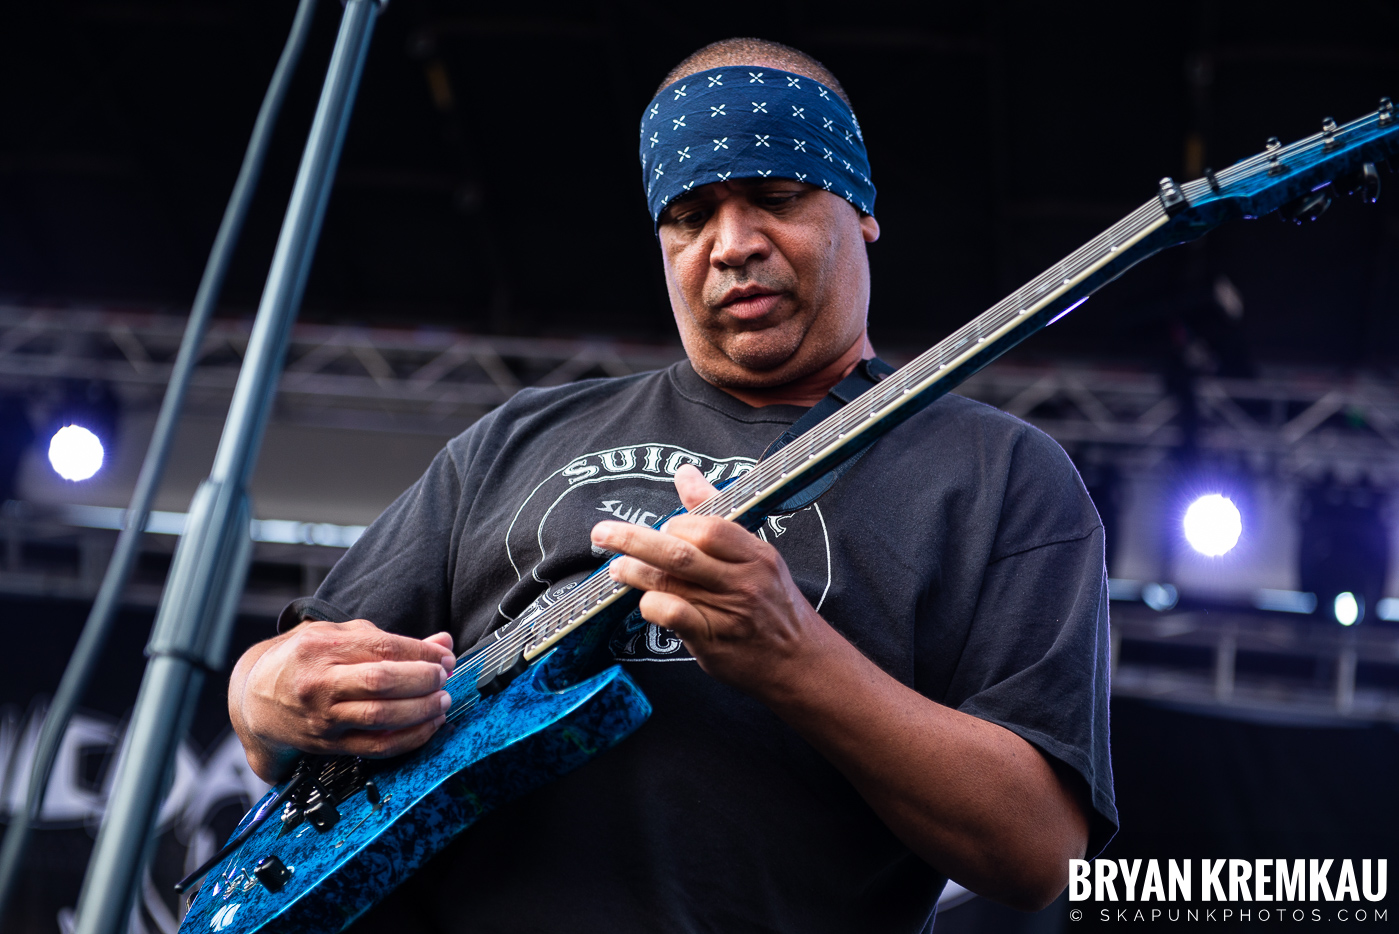 Suicidal Tendencies @ The Bash Music & Craft Beer Festival, Old Bridge Township Raceway Park, Englishtown, NJ - 6.2.19 (49)